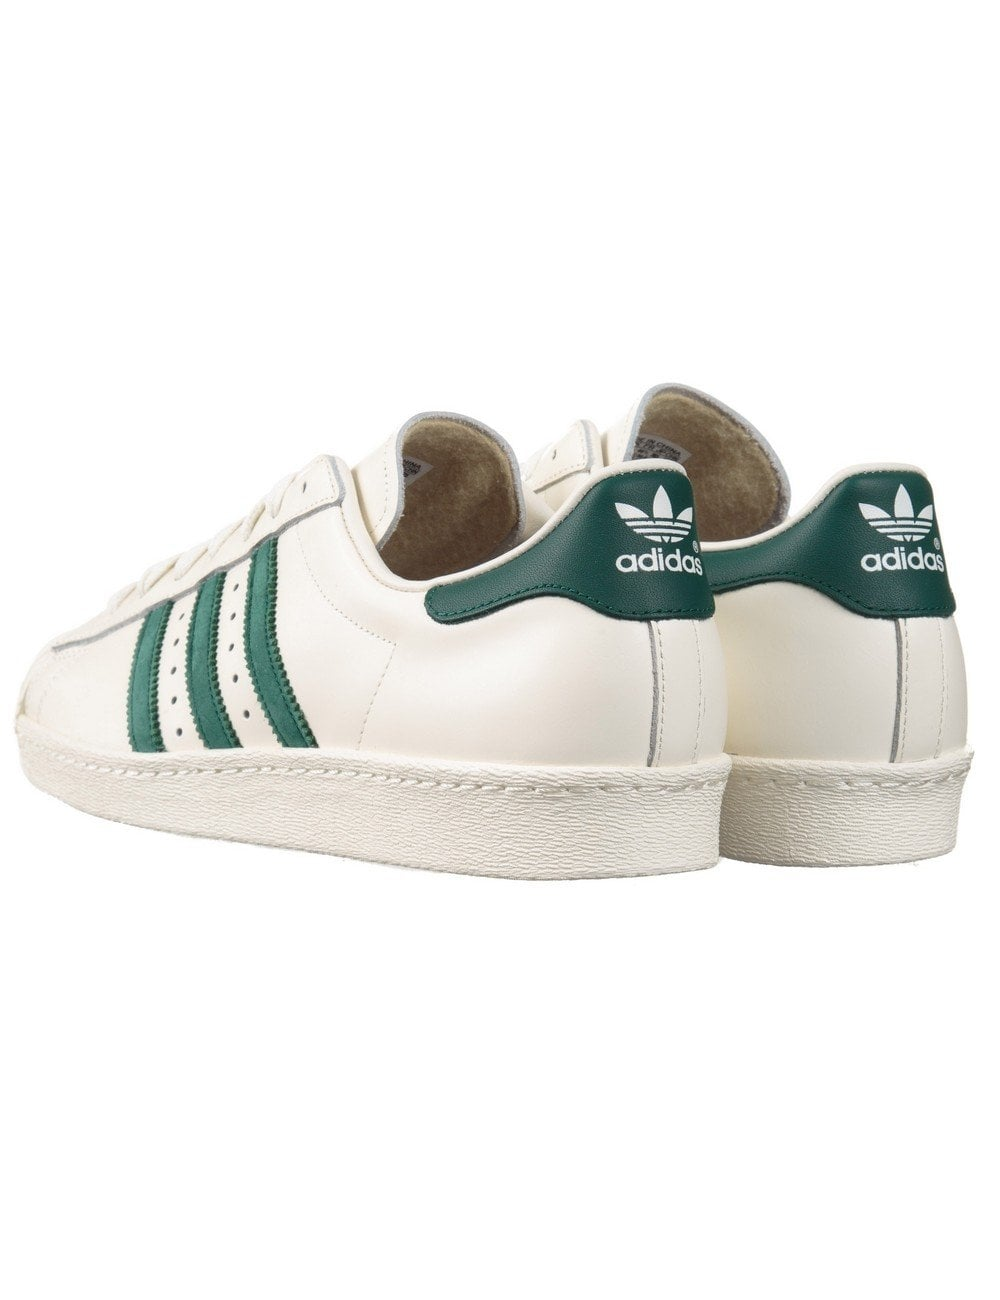 new style 9c29b 8d695 adidas superstar 80s white green